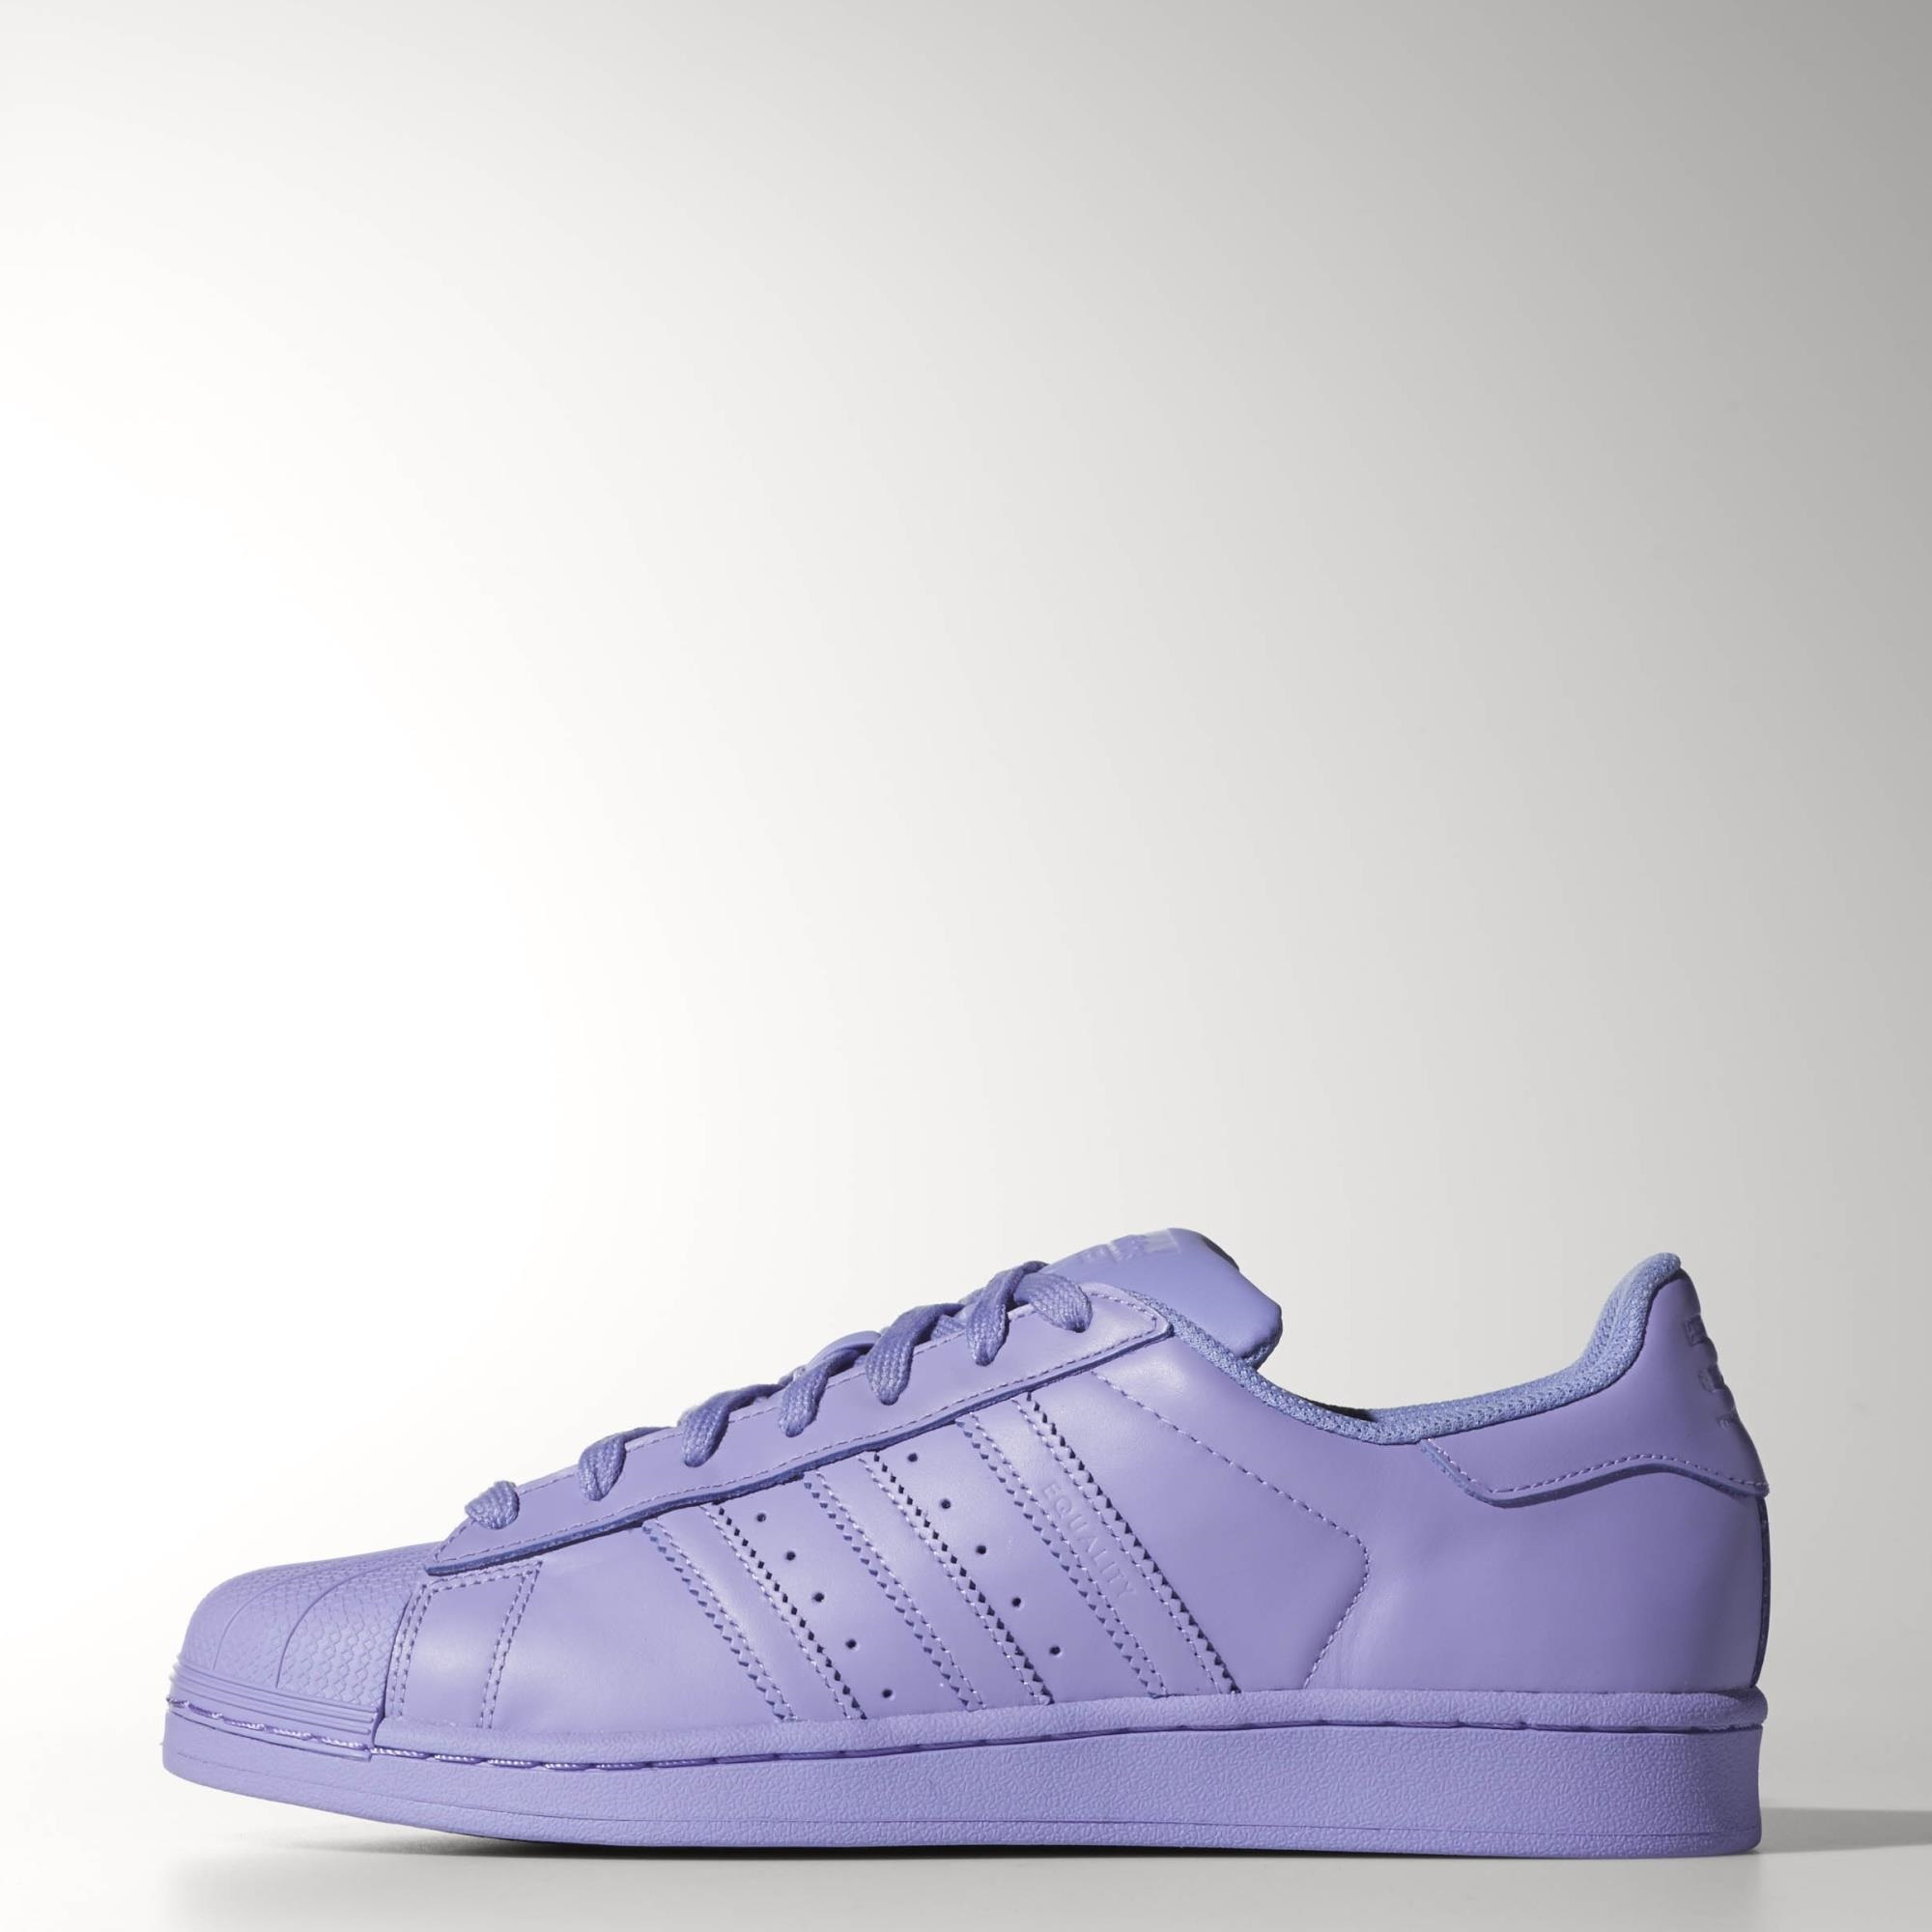 adidas superstar supercolor shoes purple adidas us. Black Bedroom Furniture Sets. Home Design Ideas